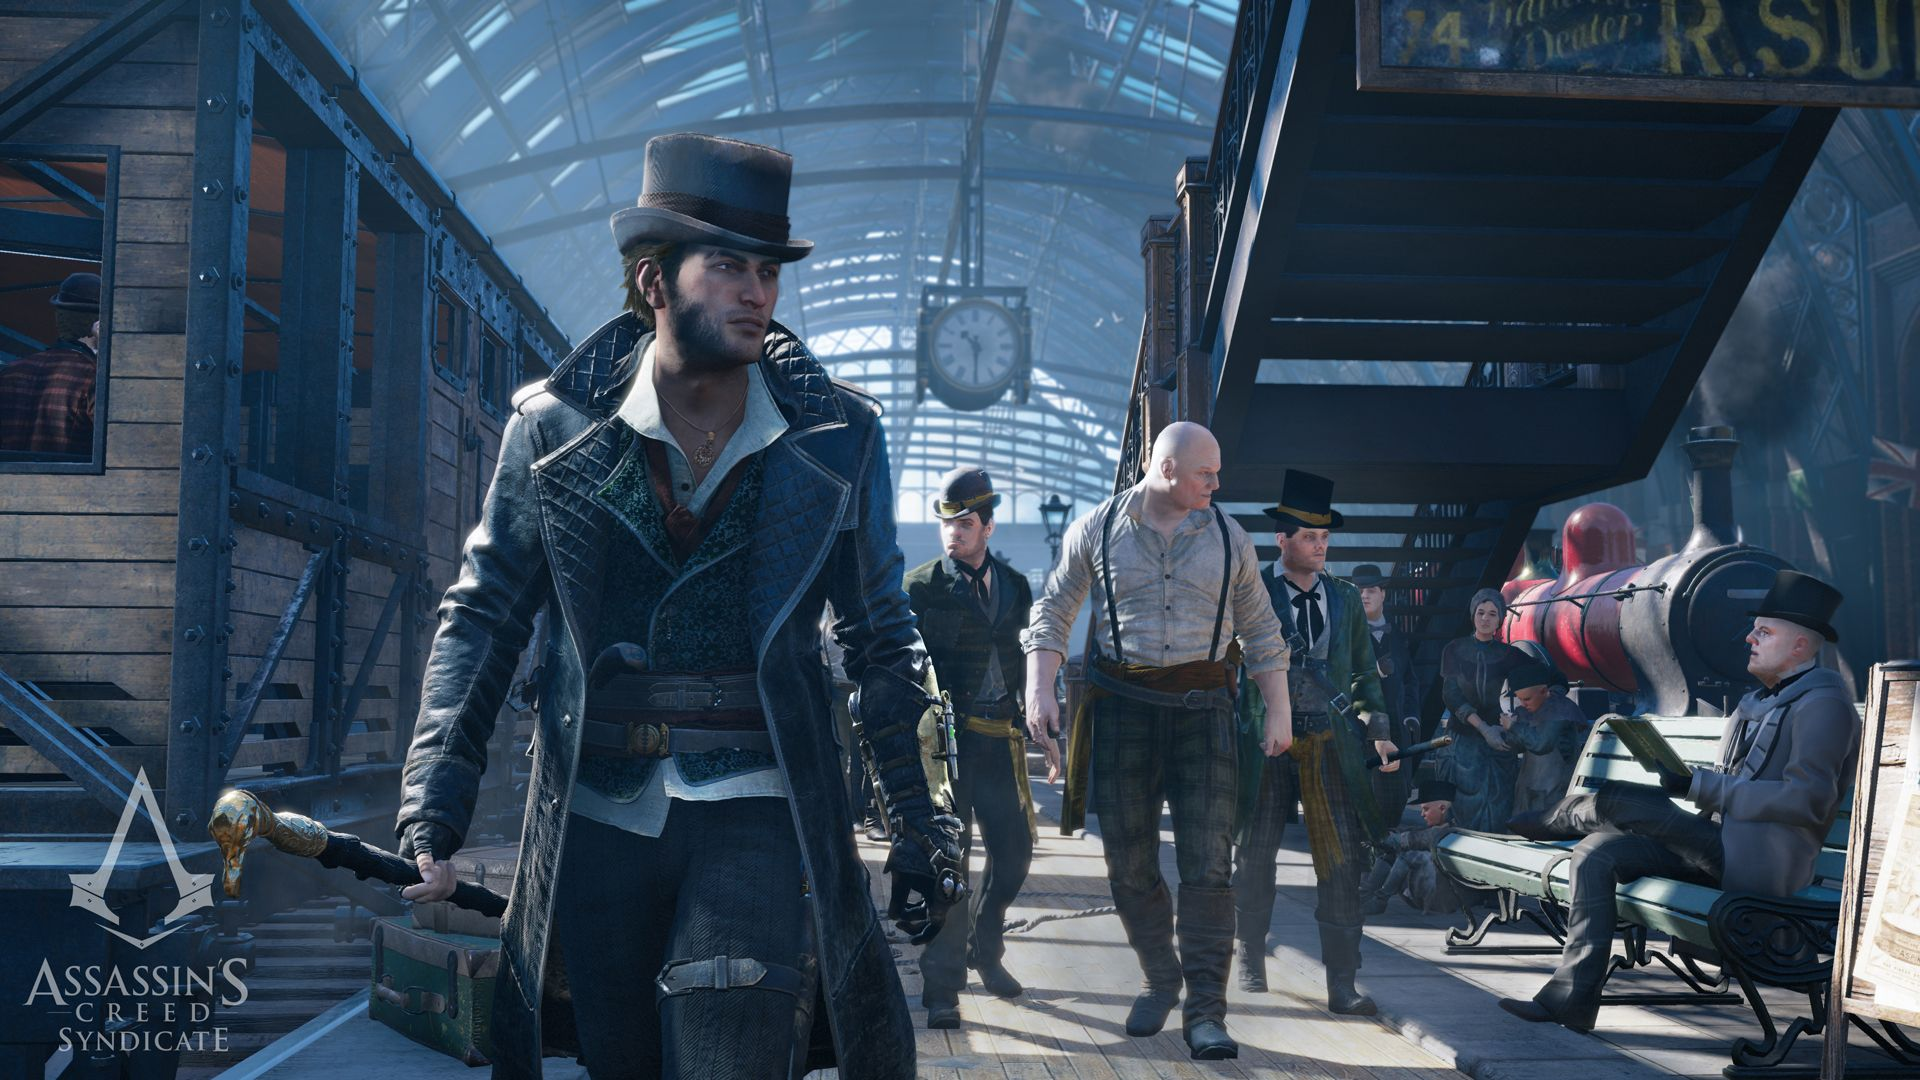 Assassin's Creed Syndicate - does it count as the sixth game, the ninth, or more?